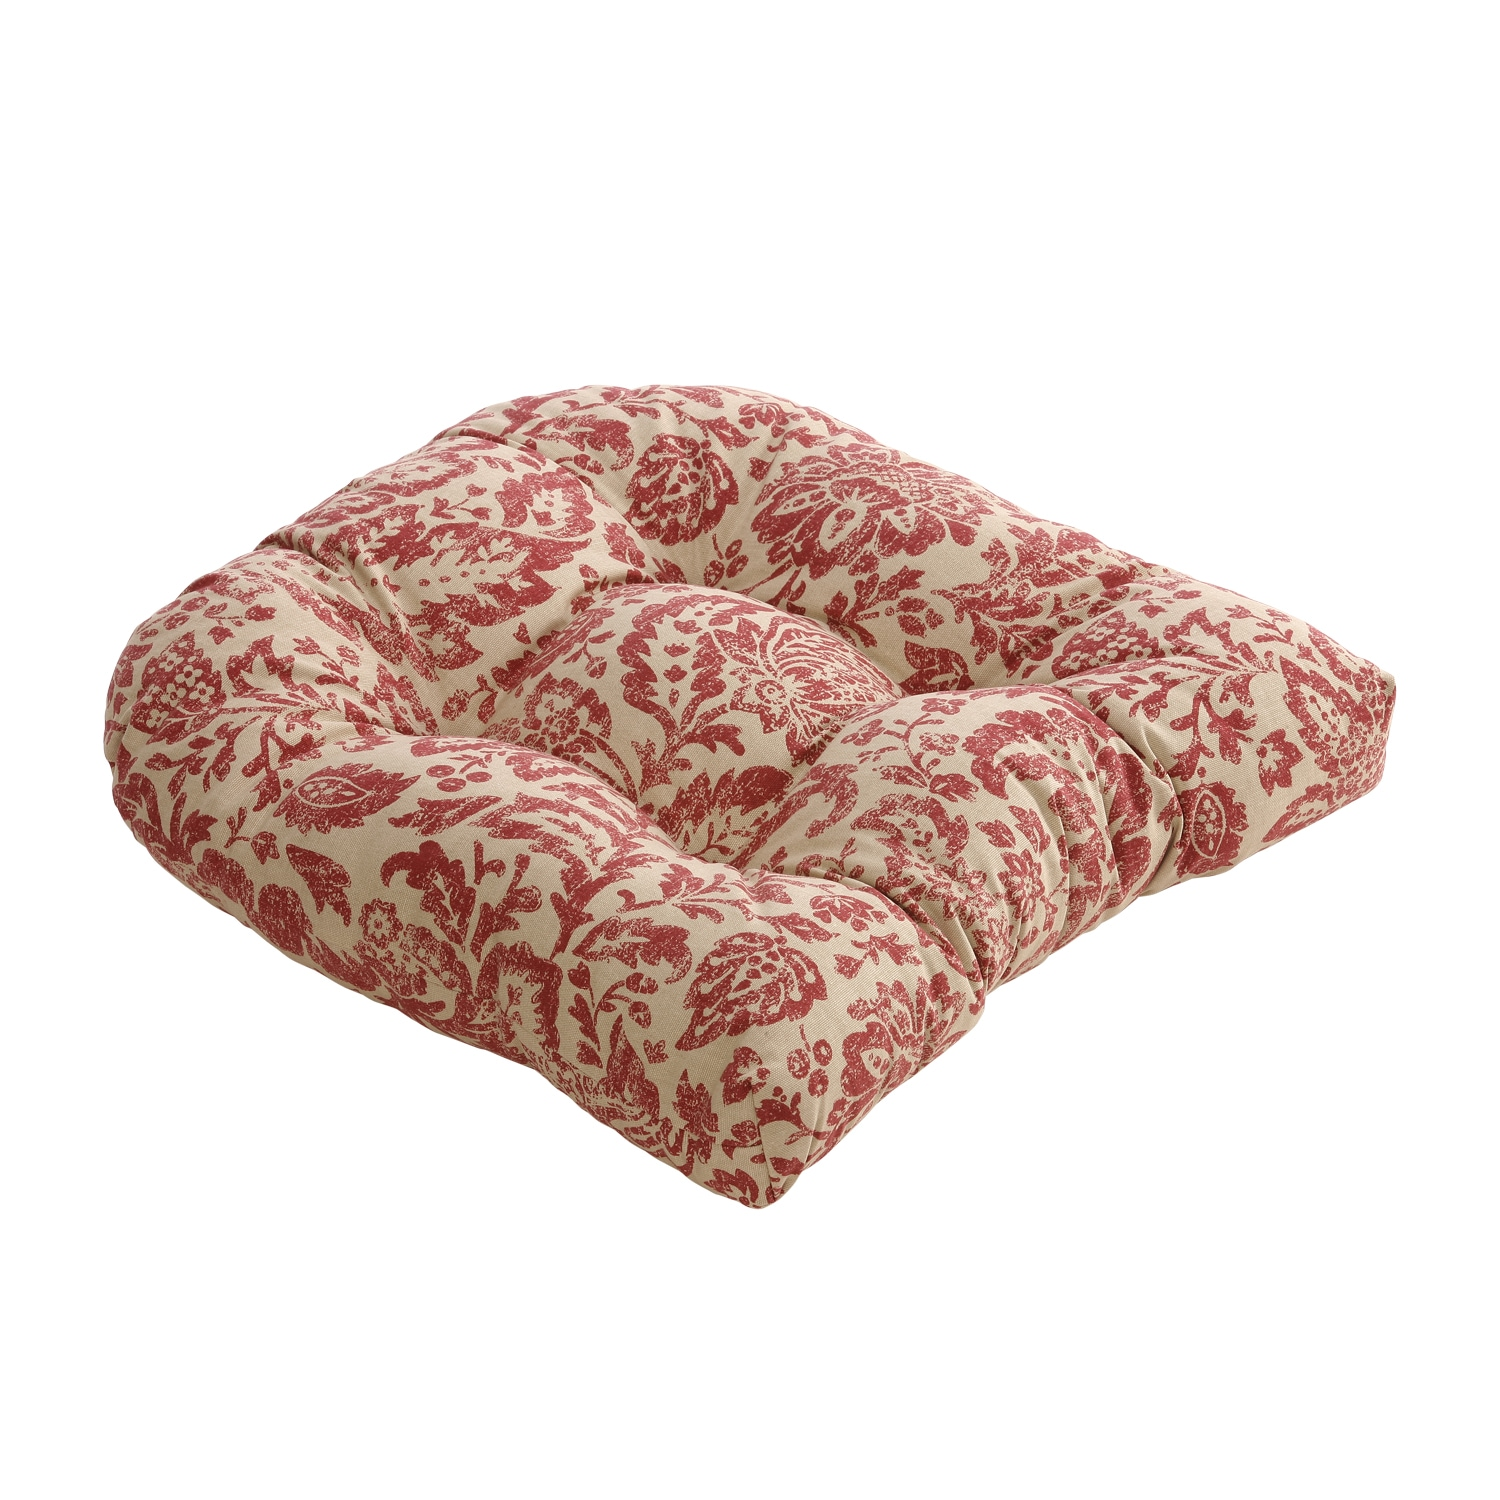 Red/ Tan Damask Chair Cushion